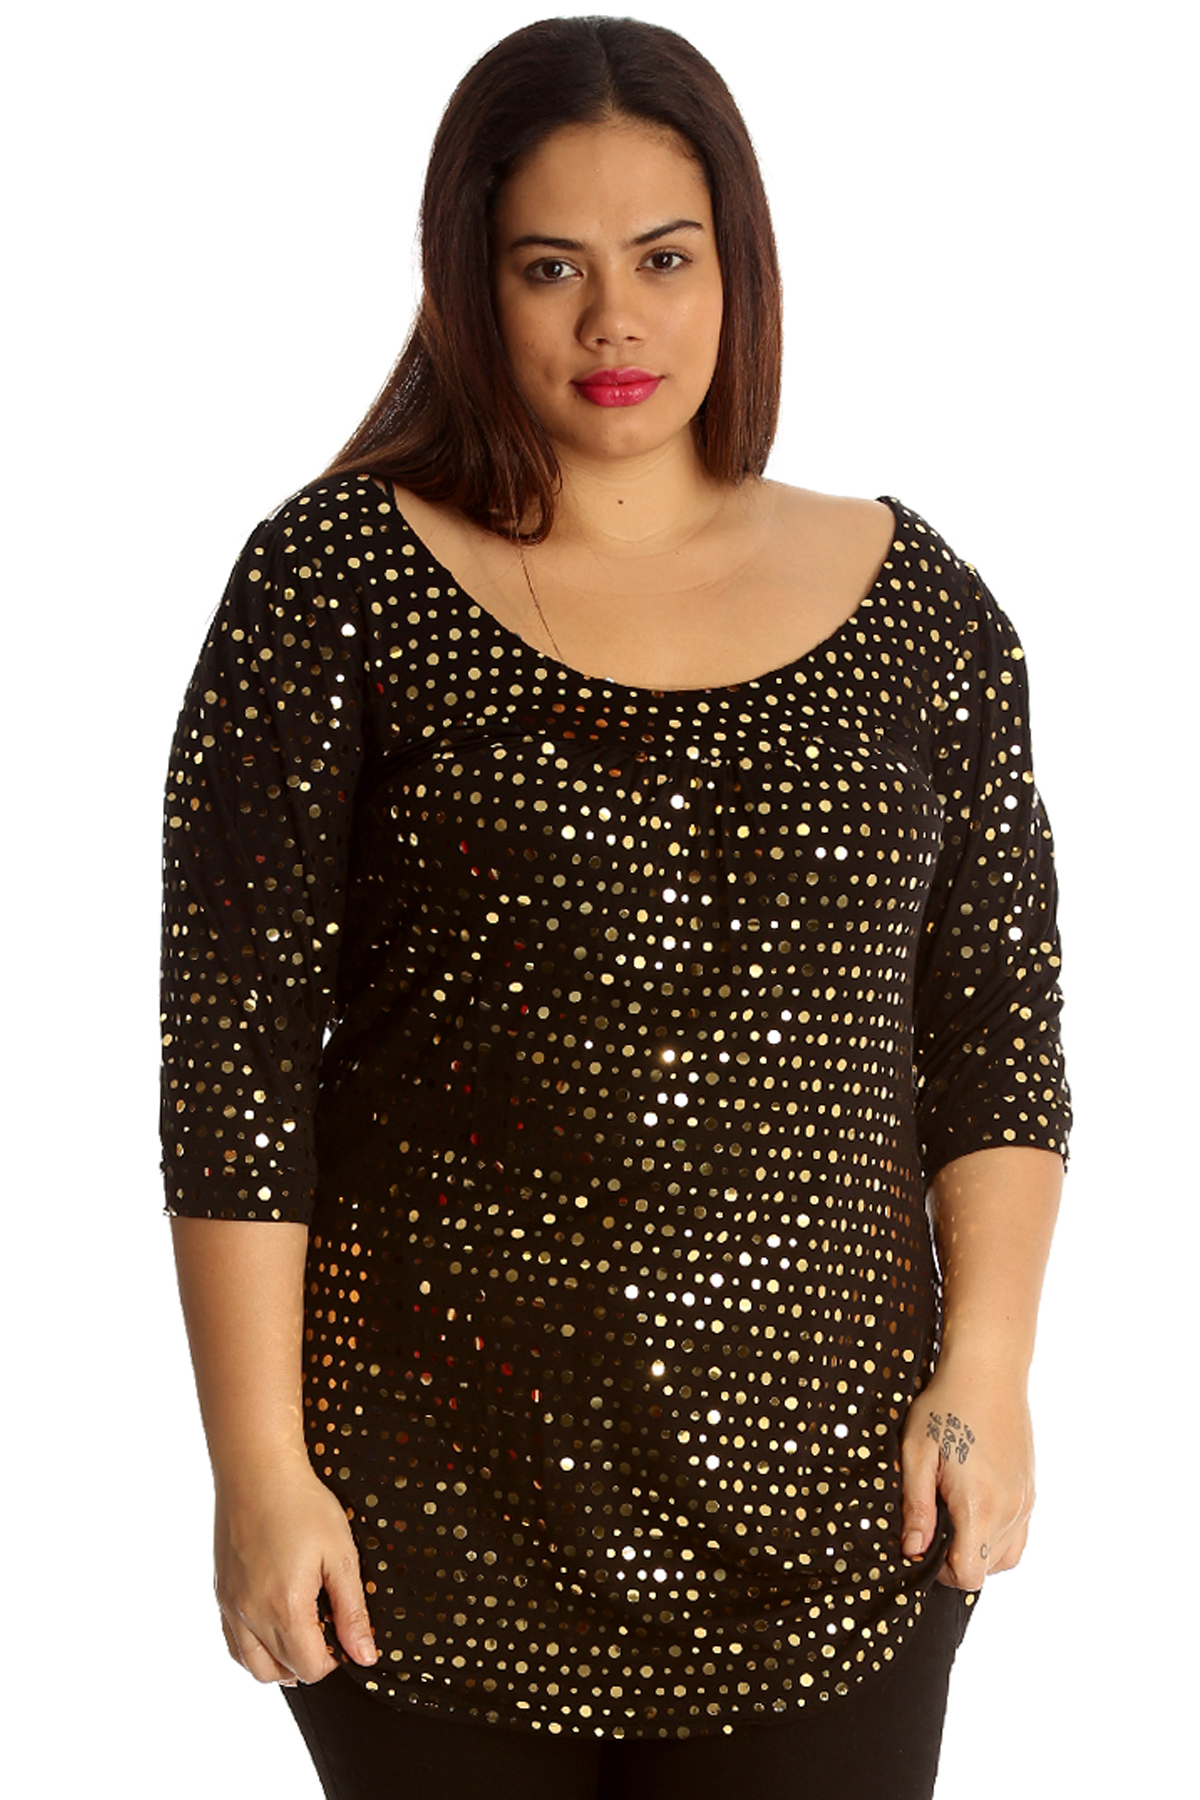 Find great deals on eBay for plus size party tops. Shop with confidence.